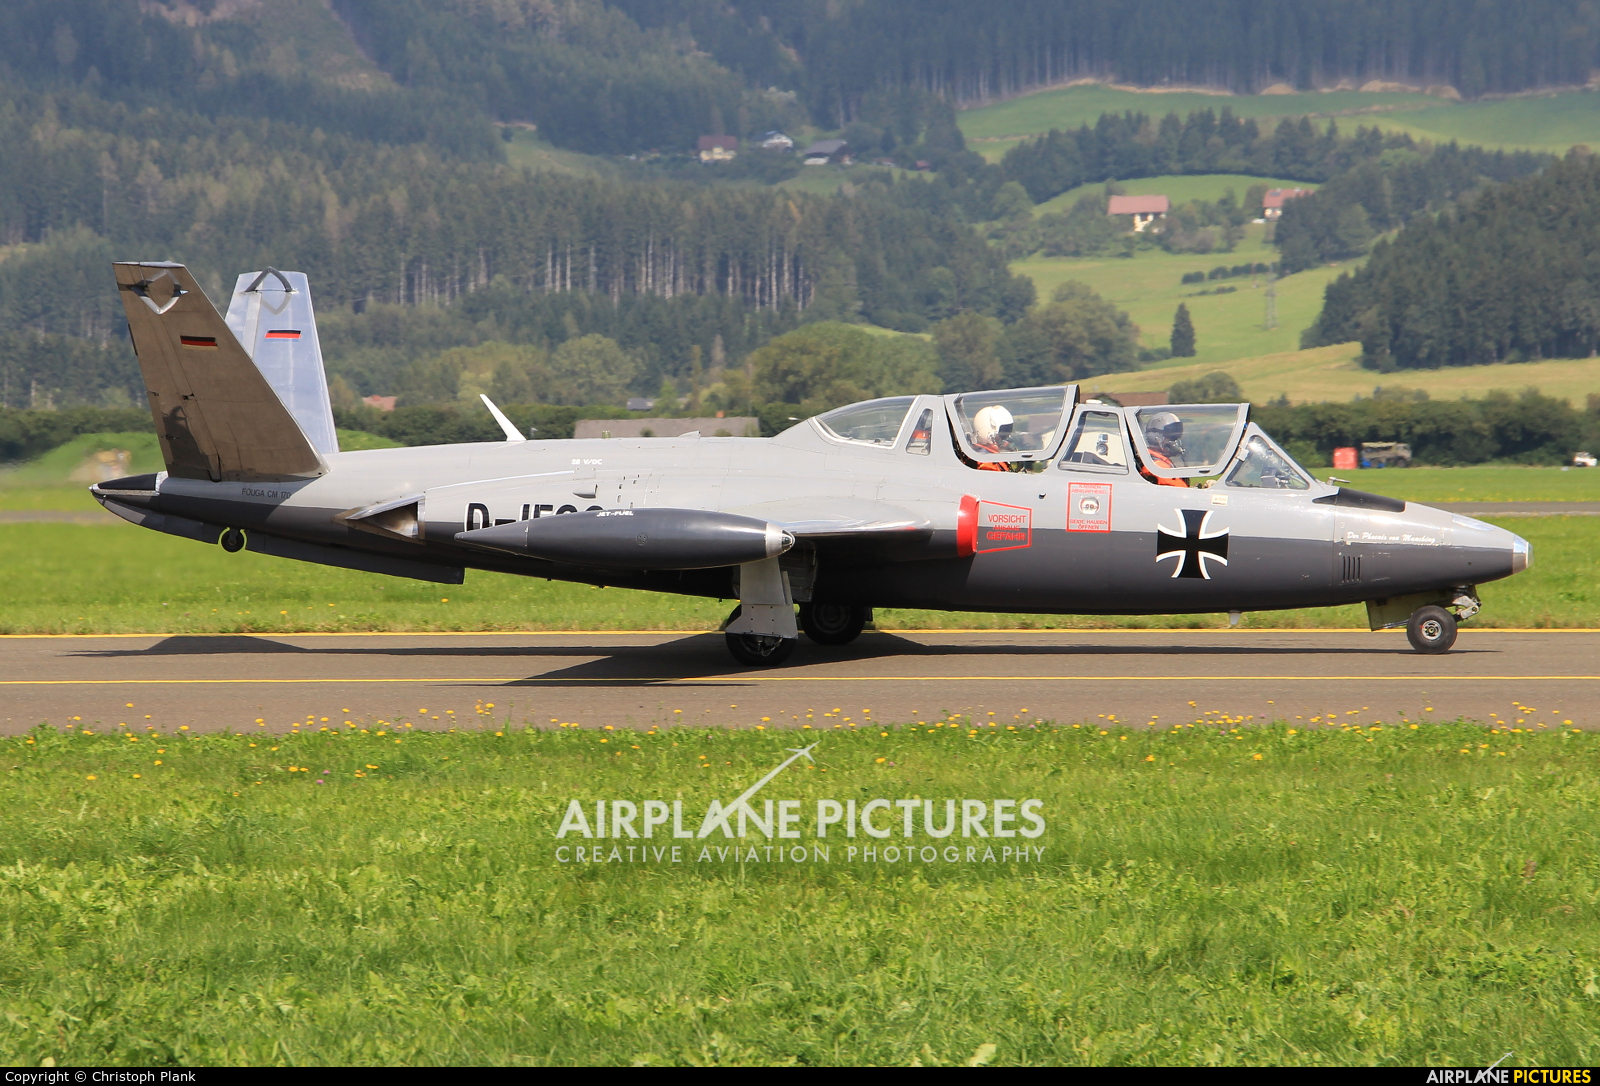 Private D-IFCC aircraft at Zeltweg